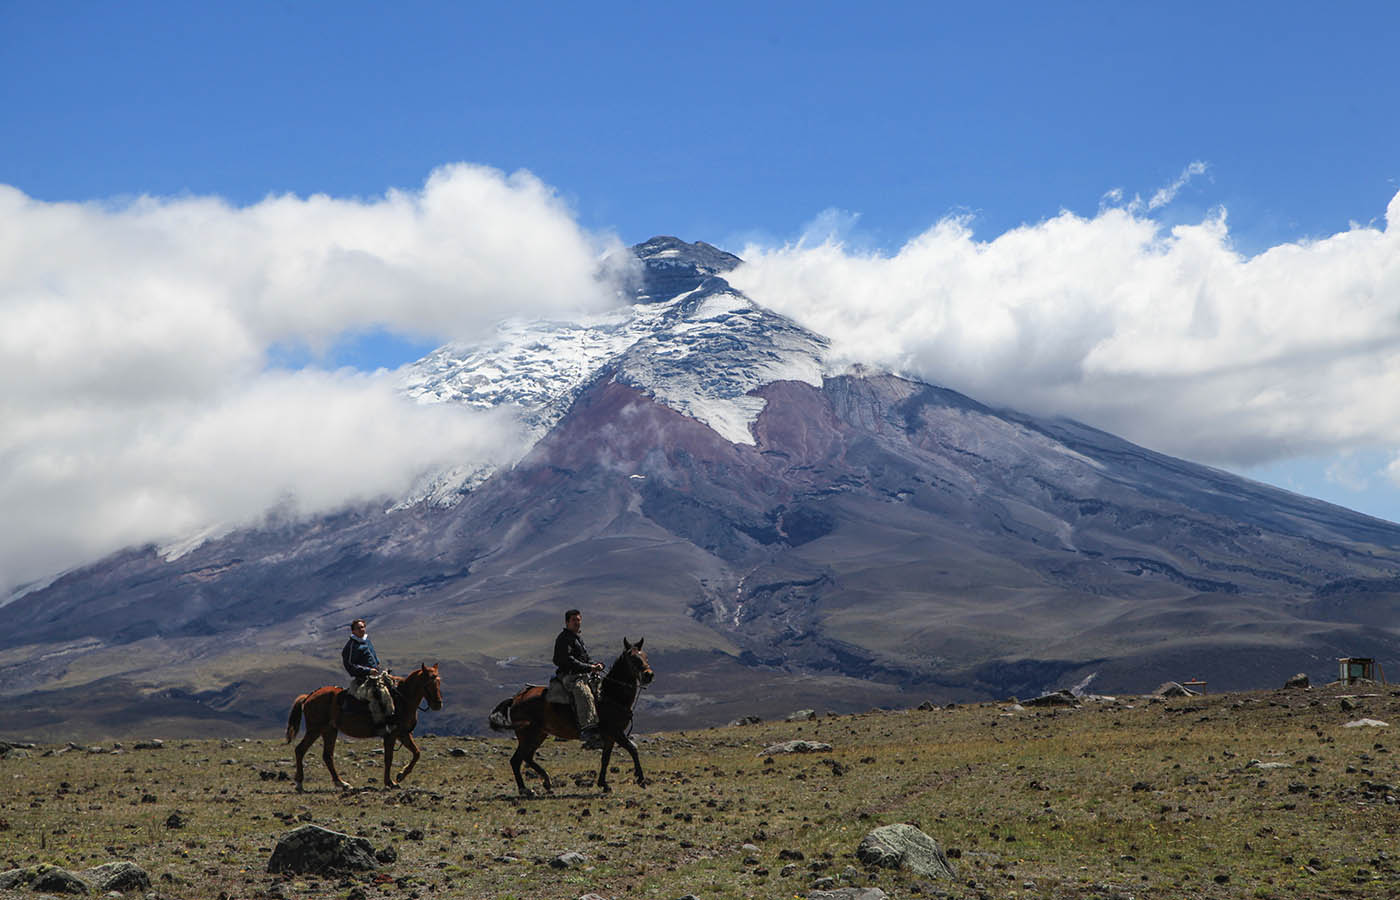 Cotopaxi National Park - This stunning park has many natural wonders for every ecotourist to enjoy. Visitors can experience a magical journey into Ecuador's natural heritage when they visit Cotopaxi National Park.